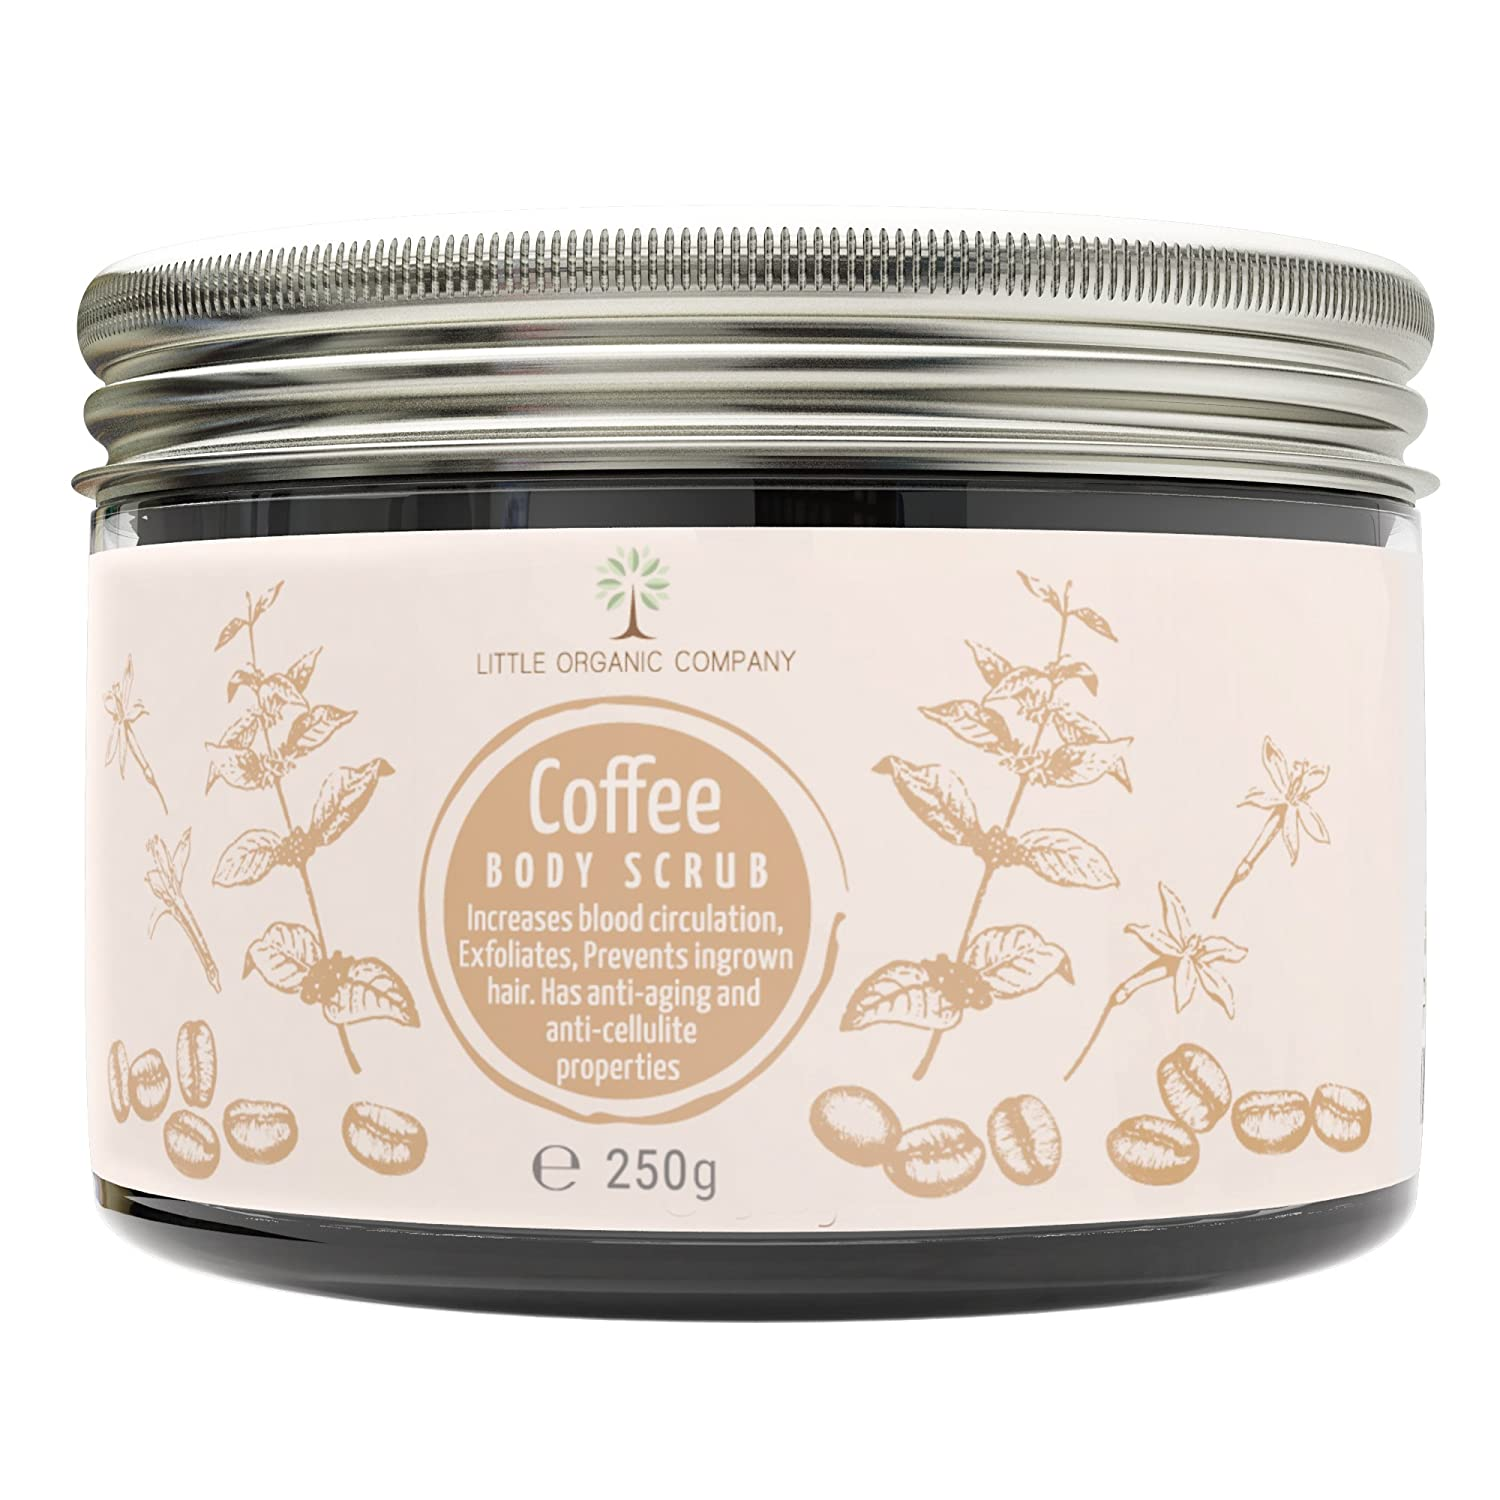 Coffee Body Scrub - Organic, 100% Natural, Vegan, Cruelty Free, No Microbeads - Exfoliating, Anti-Aging, Anti-Cellulite, Increases Blood Circulation, Prevents Ingrown Hairs, Promotes Skin Cell Growth Little Organic Company